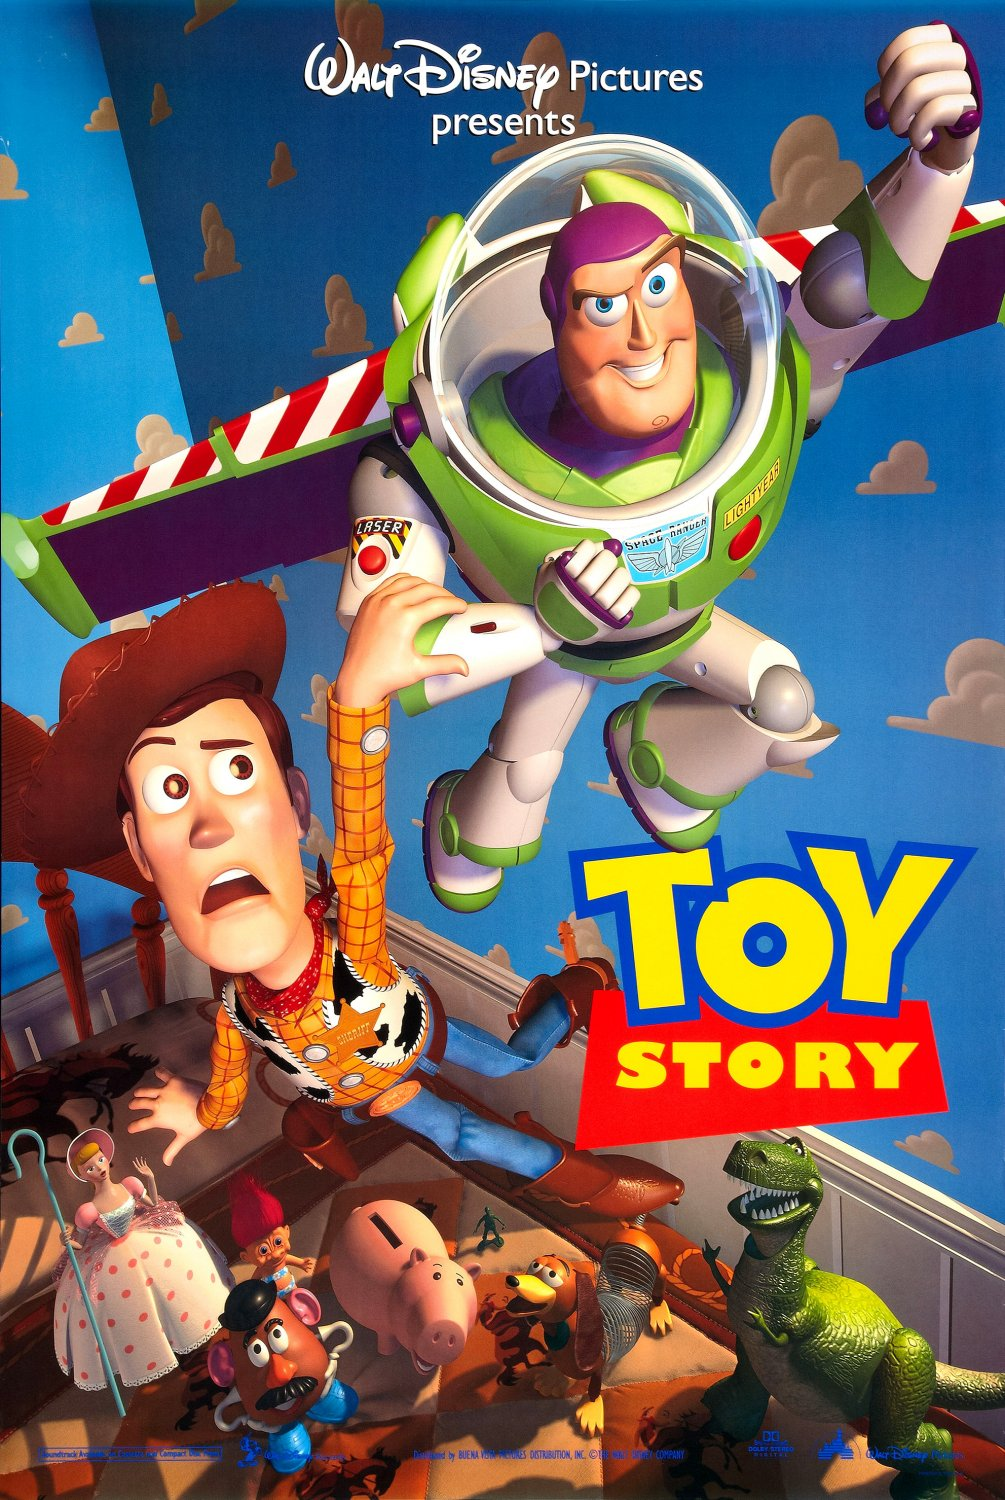 Toy Story (1995) - Directed By: John LasseterStarring: Tom Hanks, Tim Allen, Don Rickles, Jim Varney, Wallace Shawn, John RatzenbergerRated: G RatedRun Time: 1h 21mTMM Score: 4 StarsStrengths: Story, HumorWeakness: None